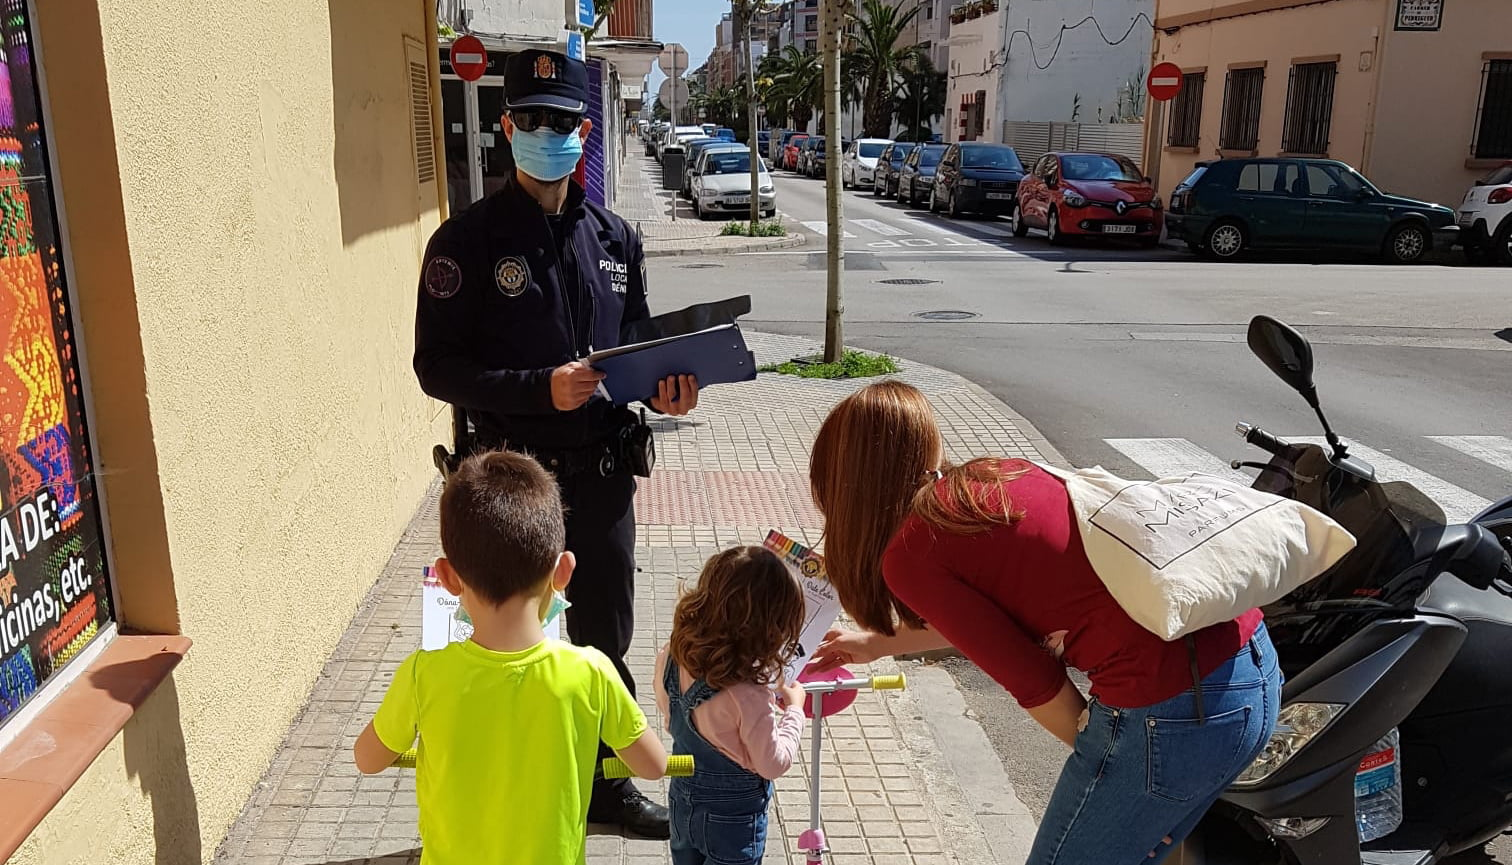 Police information tasks in Dénia